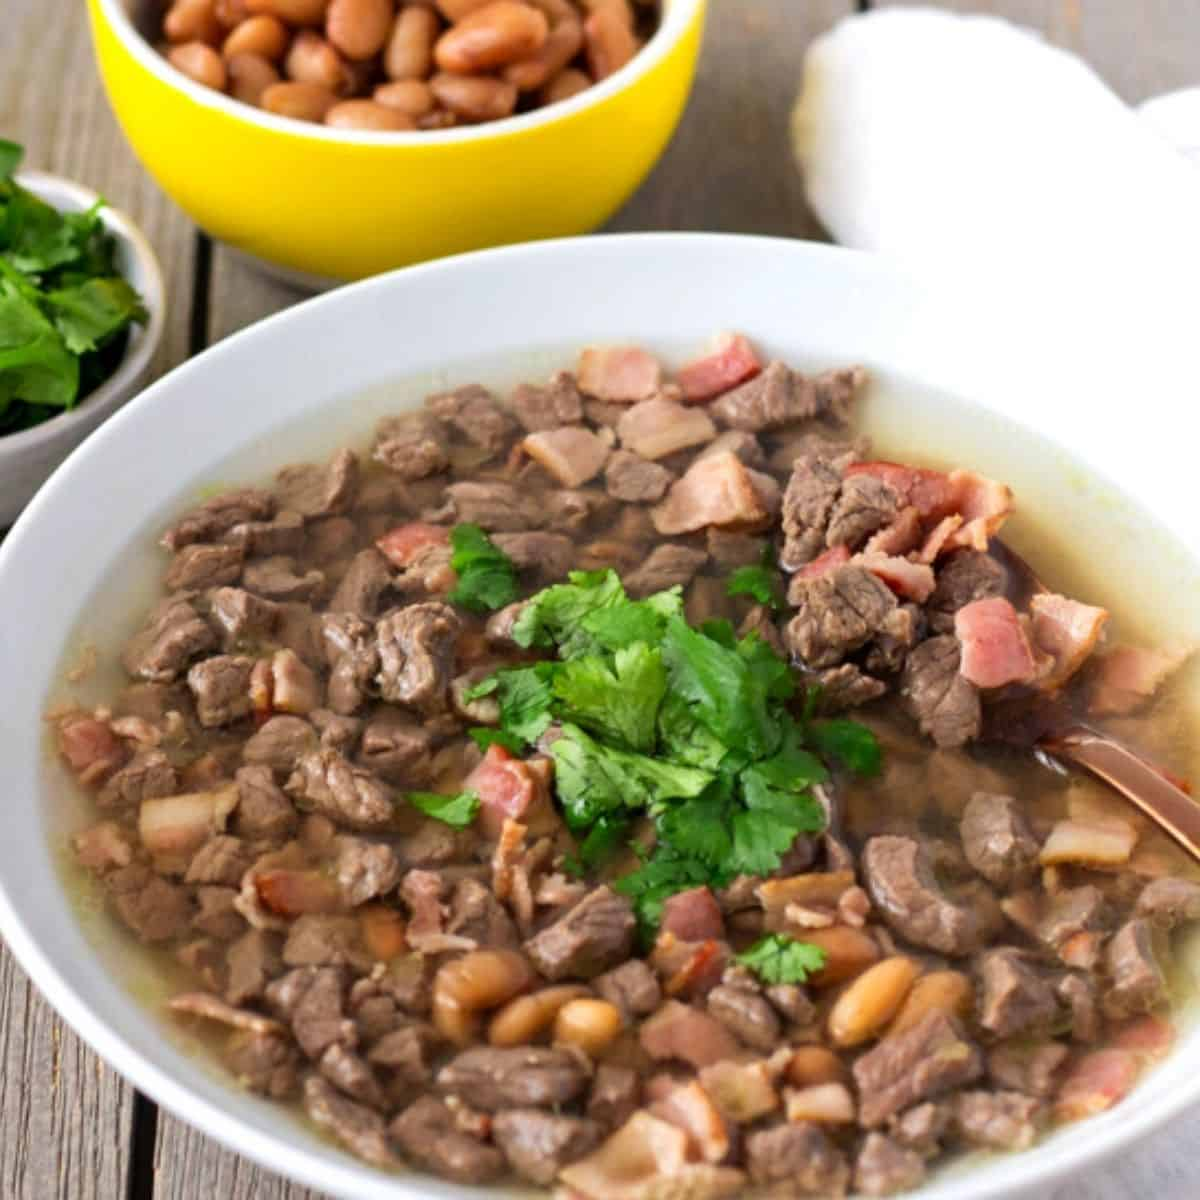 White bowl with broth, diced beef, whole beans, and cilantro garnish in the middle.